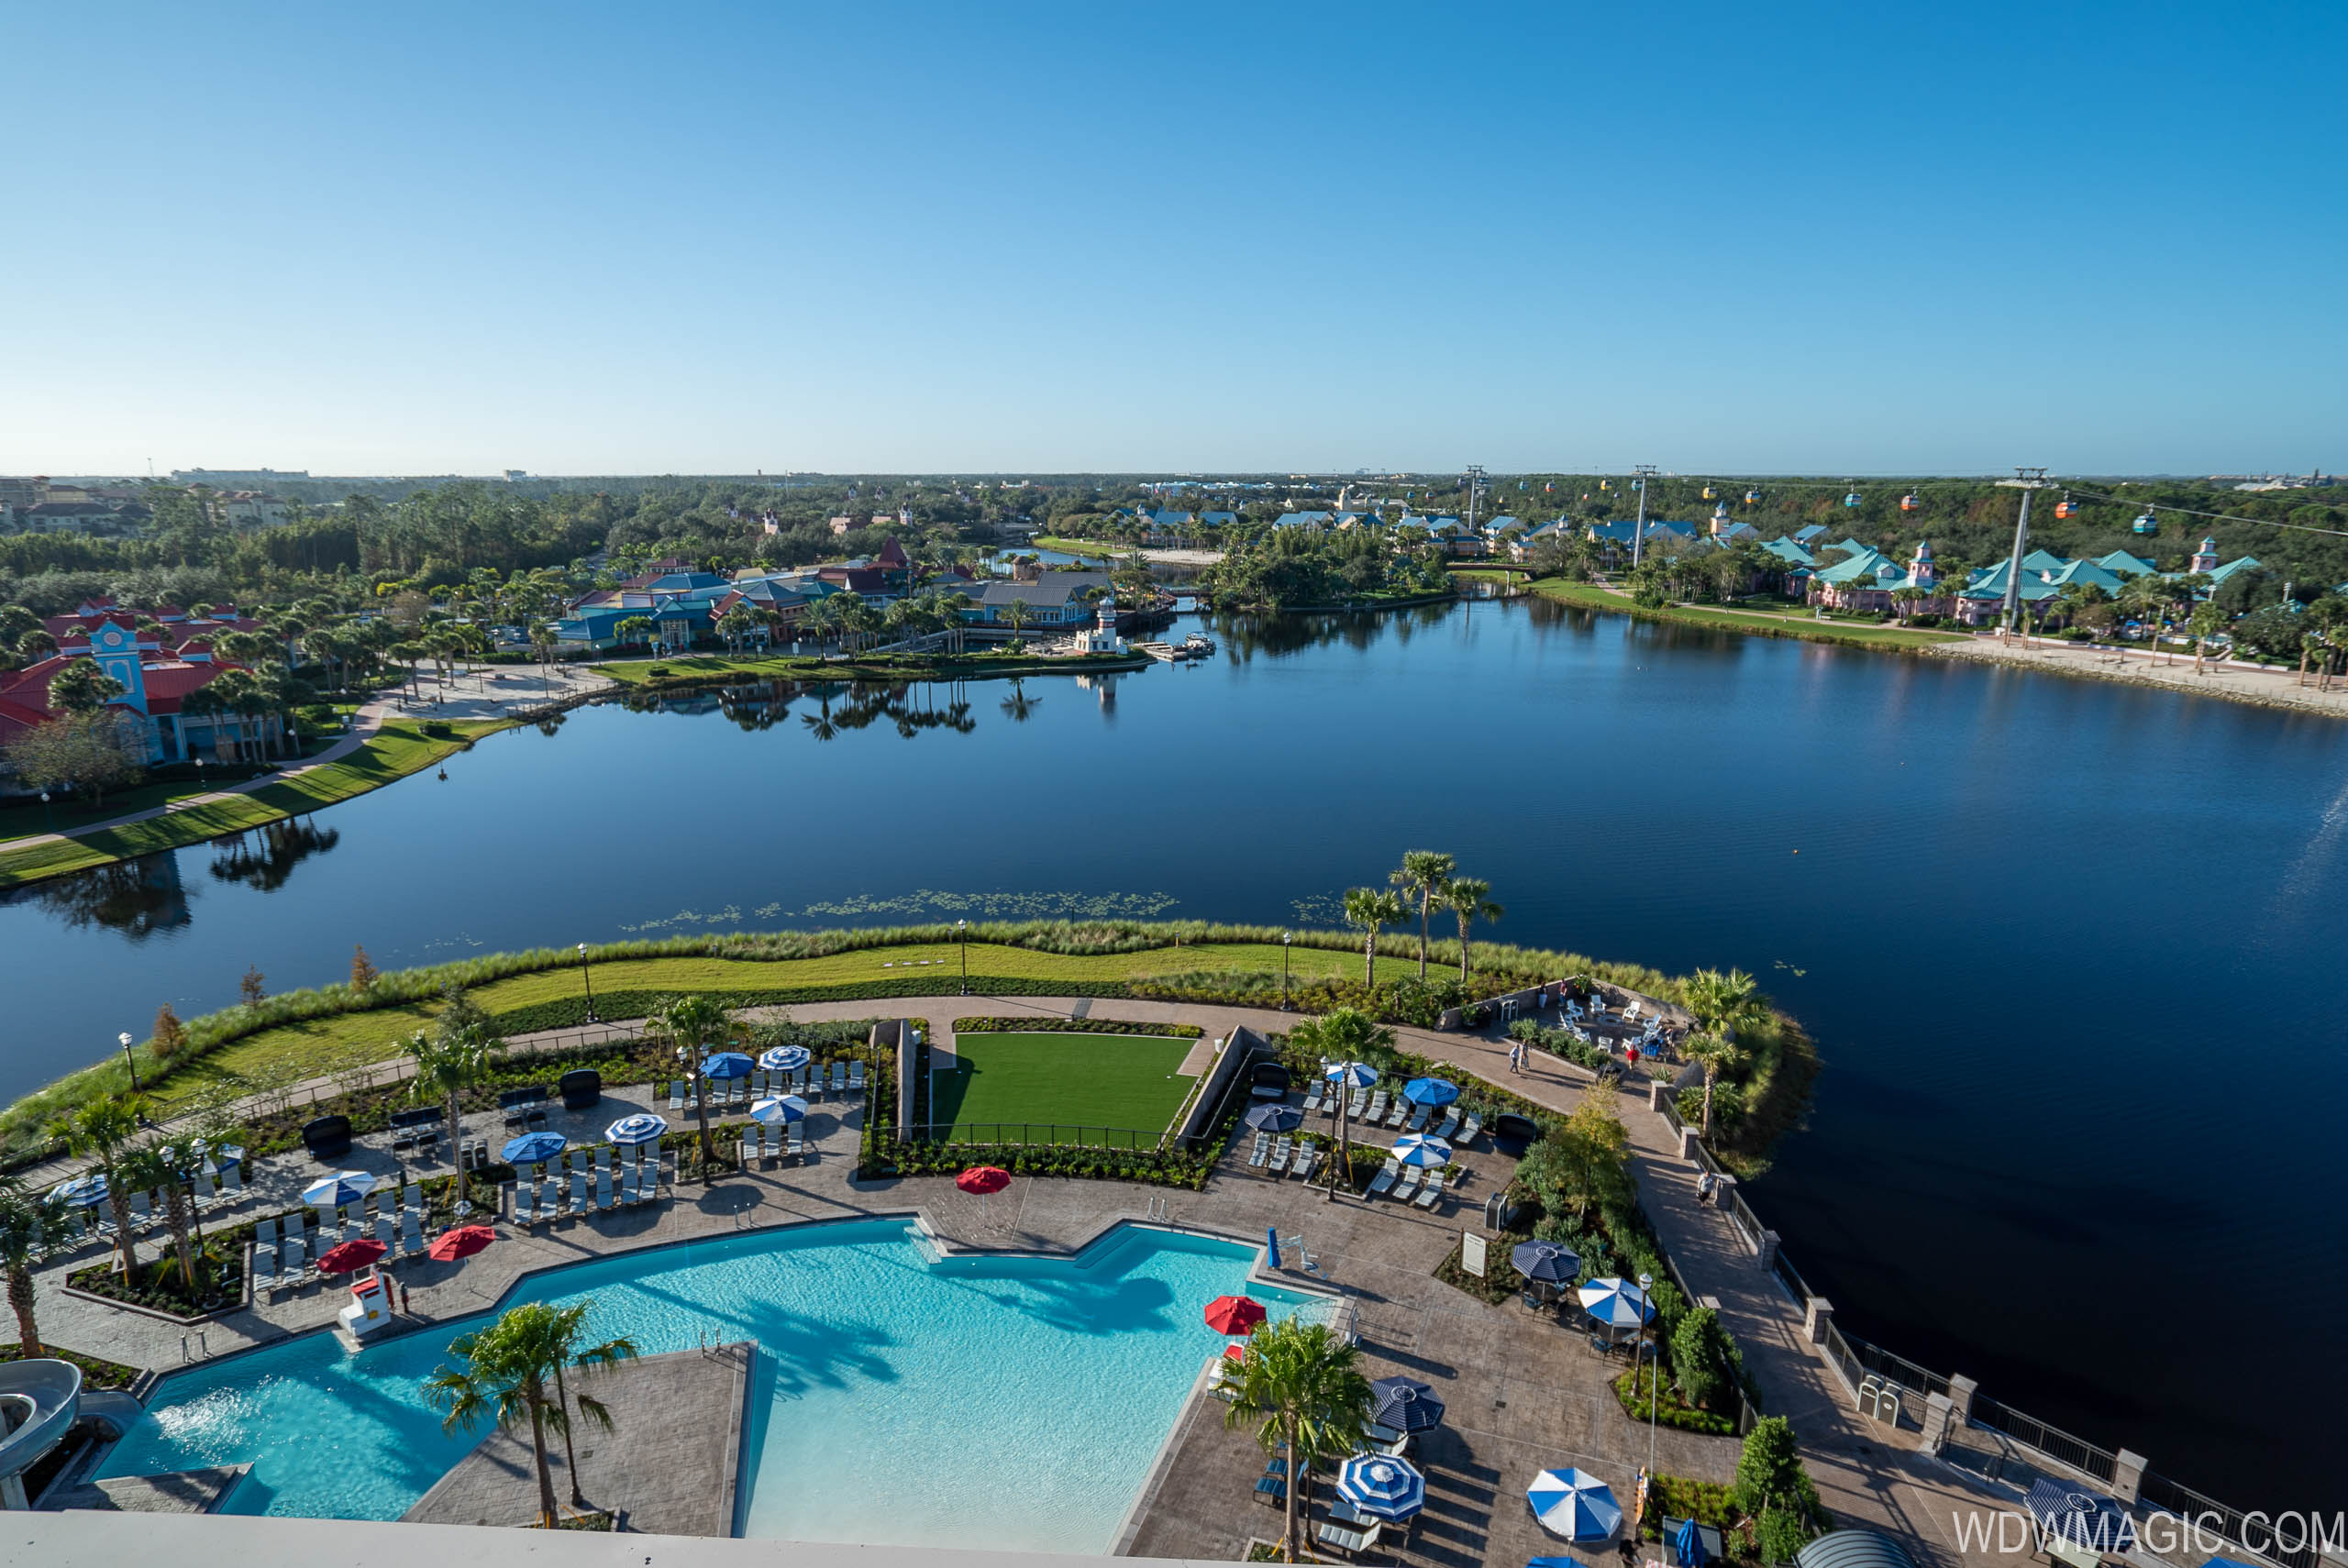 Rooftop views from Disney's Riviera Resort